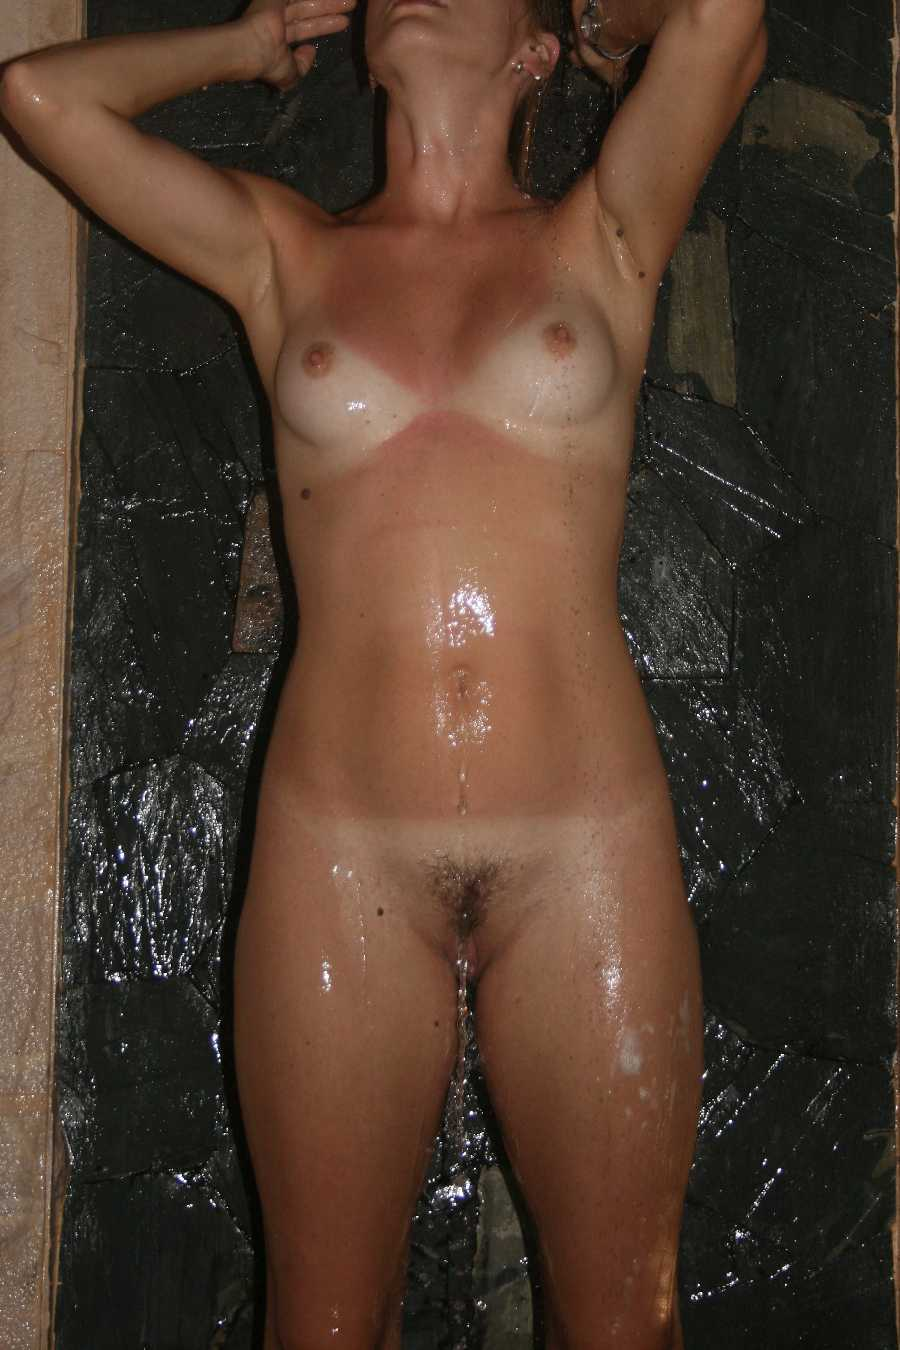 Girl in Shower Dare